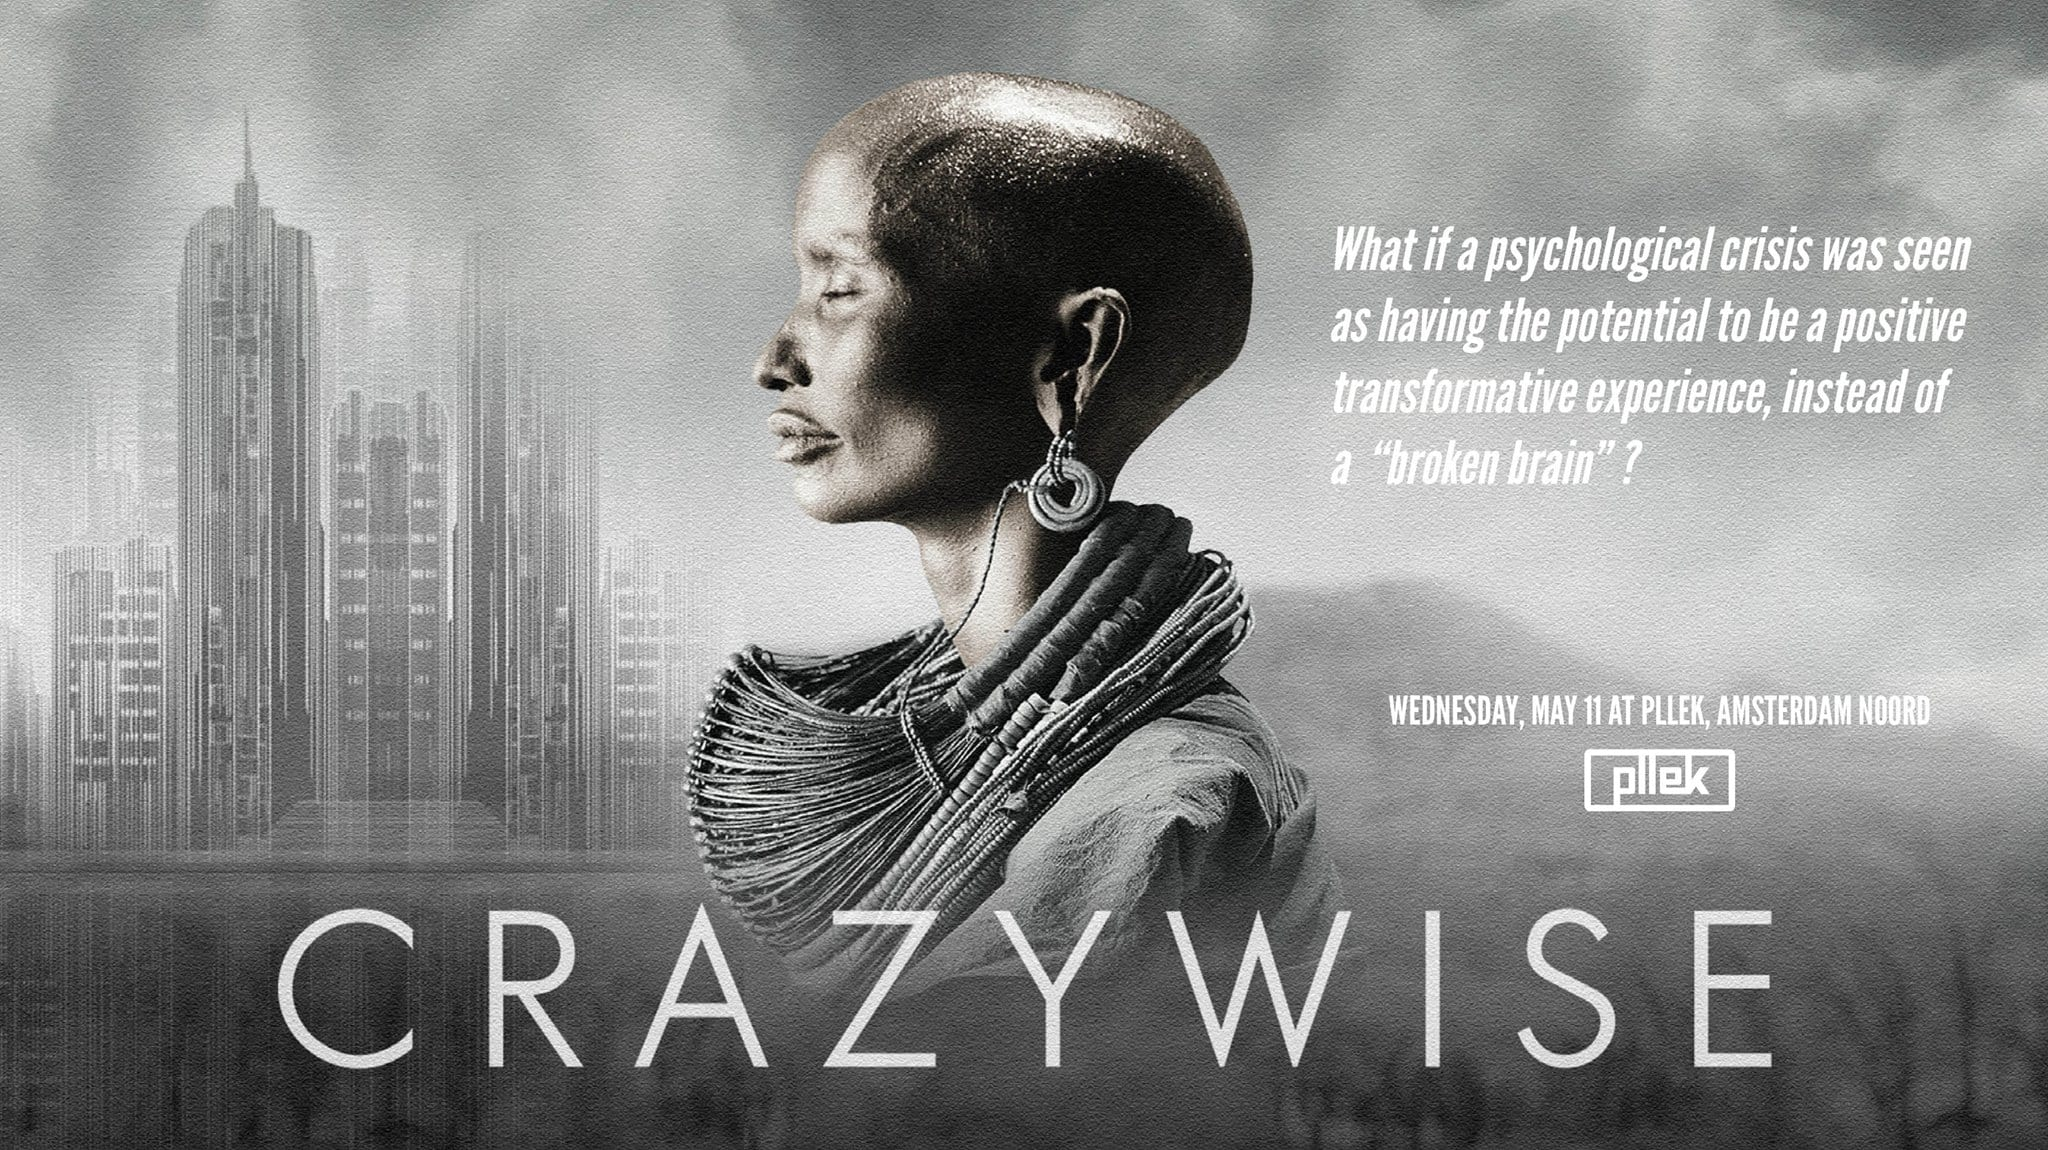 Crazywise film Poster